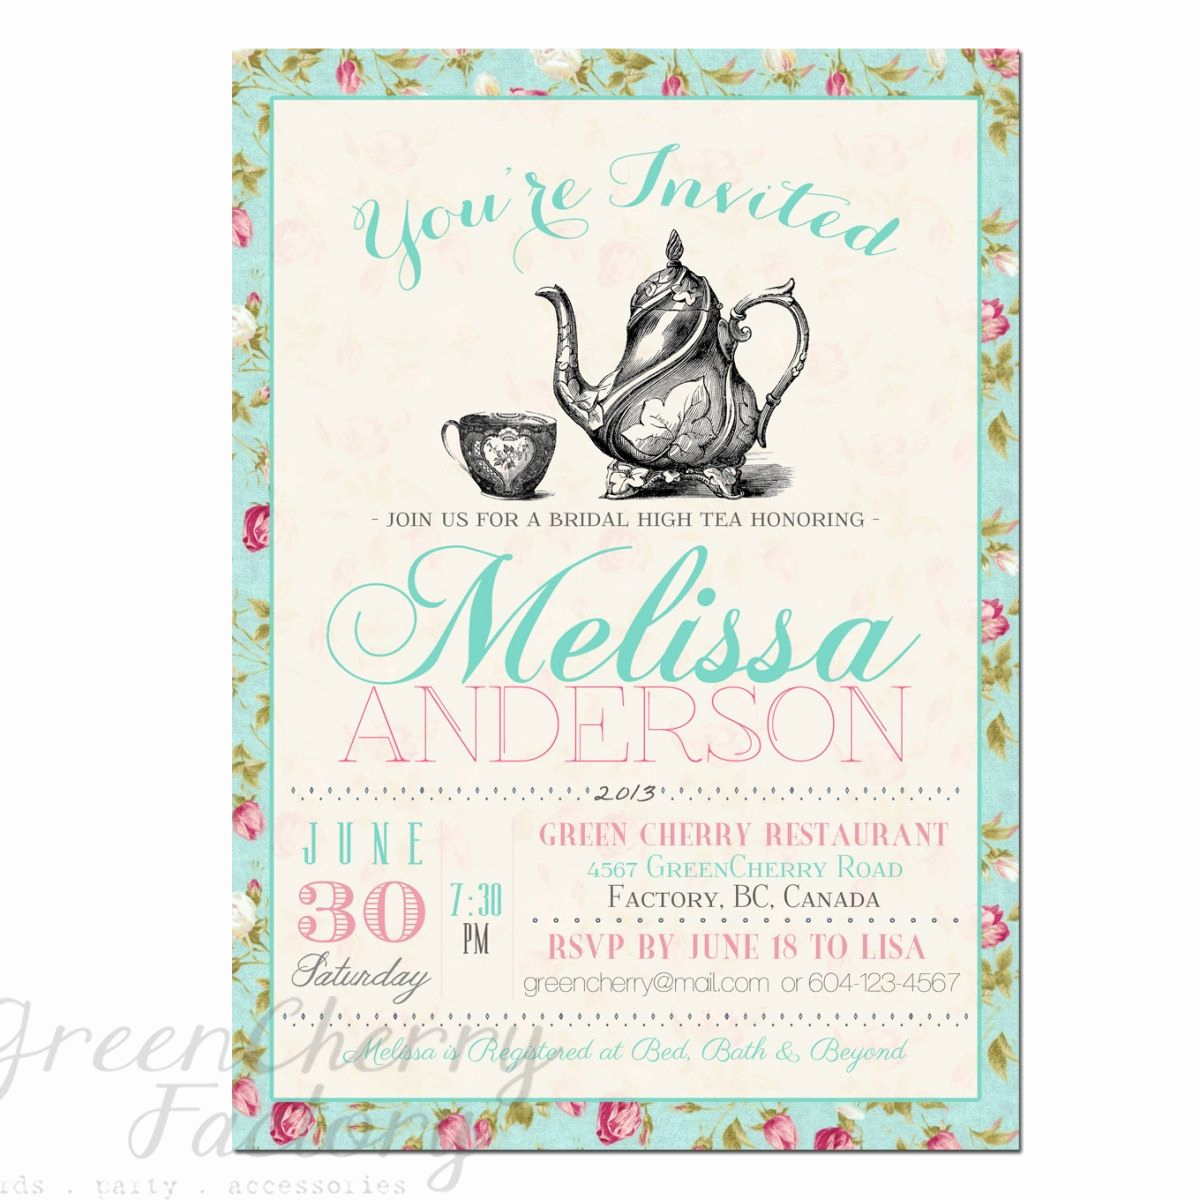 Tea Party Invitation Template Word Best Of Tea Party Invitation Templates to Print